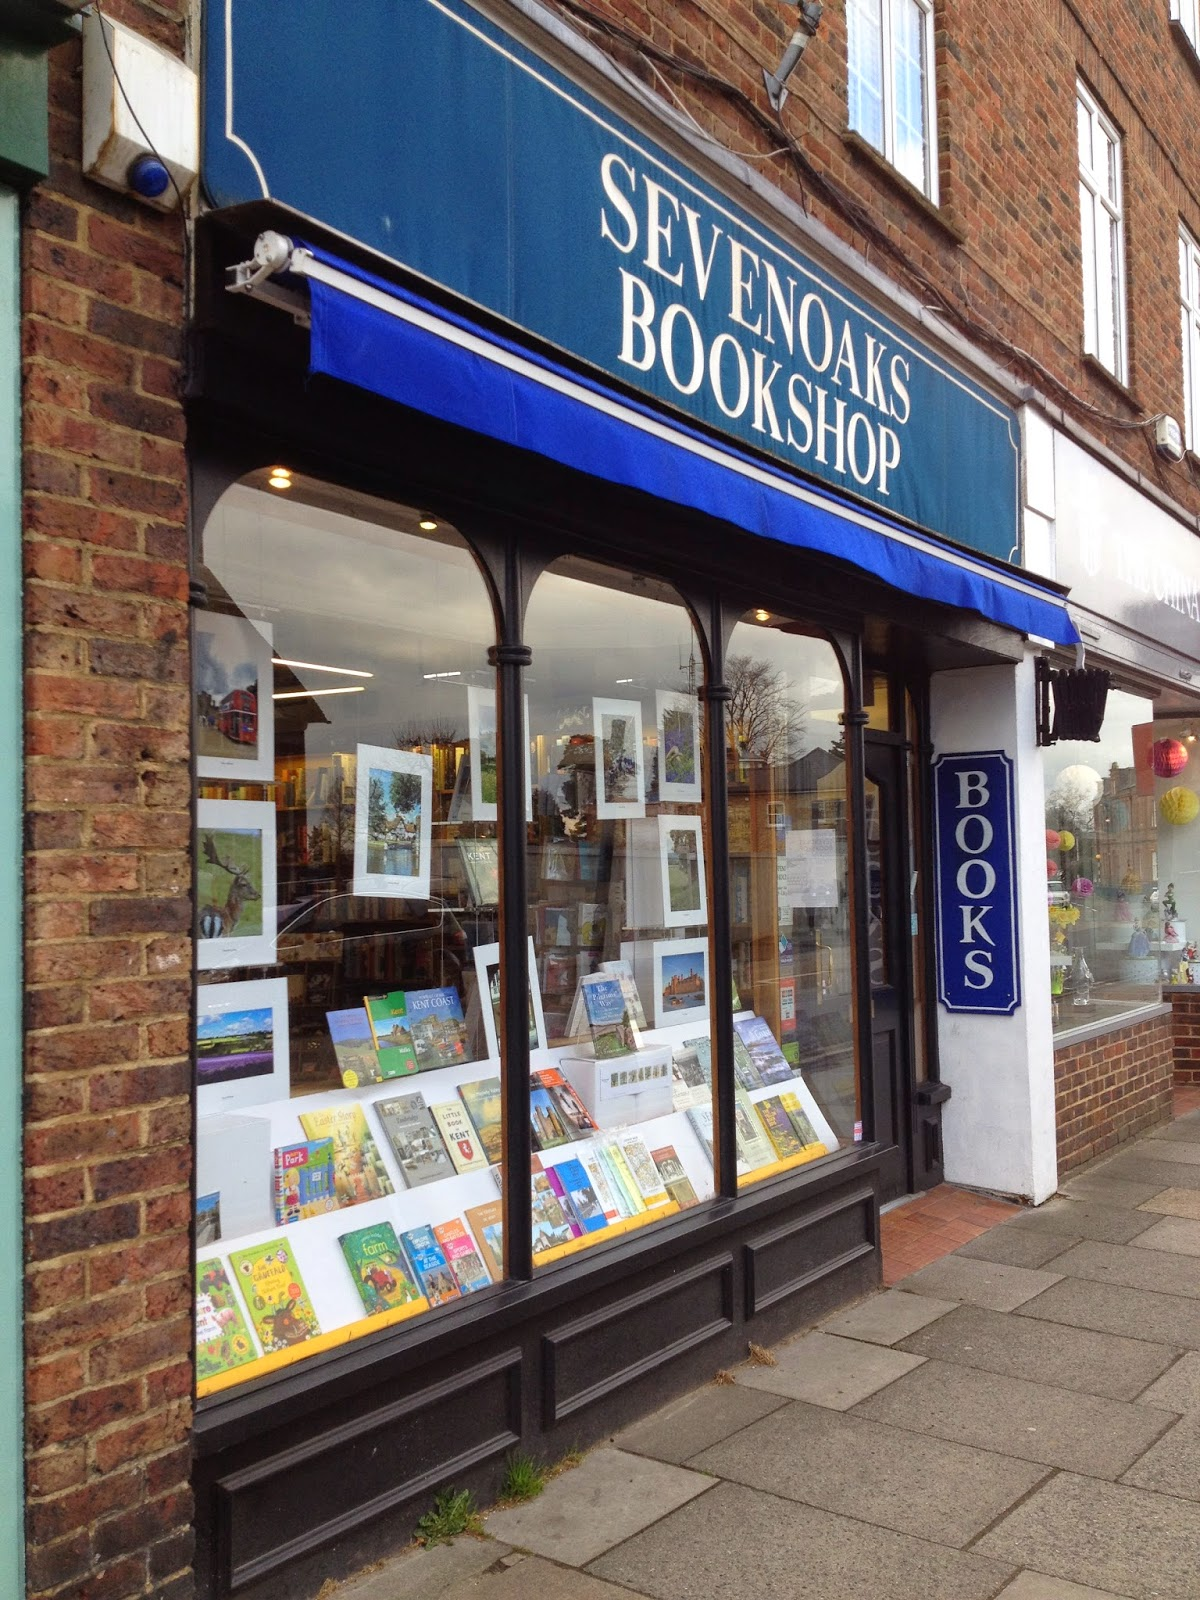 Image result for the sevenoaks bookshop